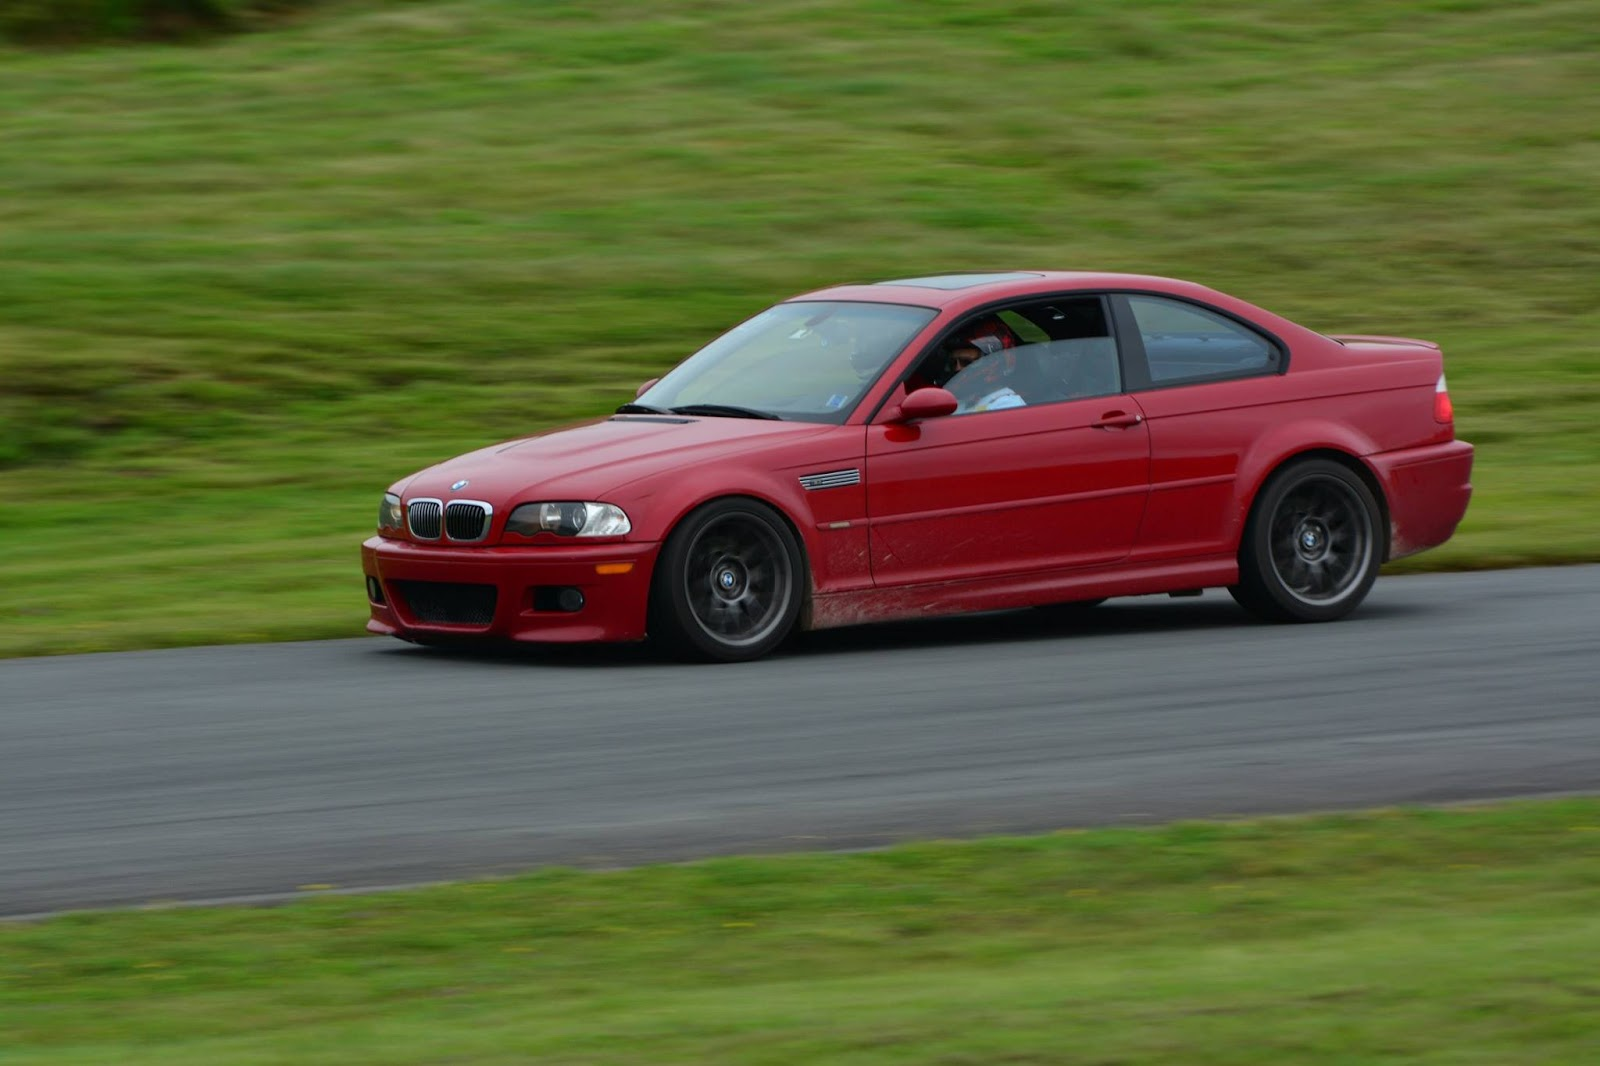 Coupe Series bmw m3 dinan E46 Dinan S1 BMW M3 - Track Driven